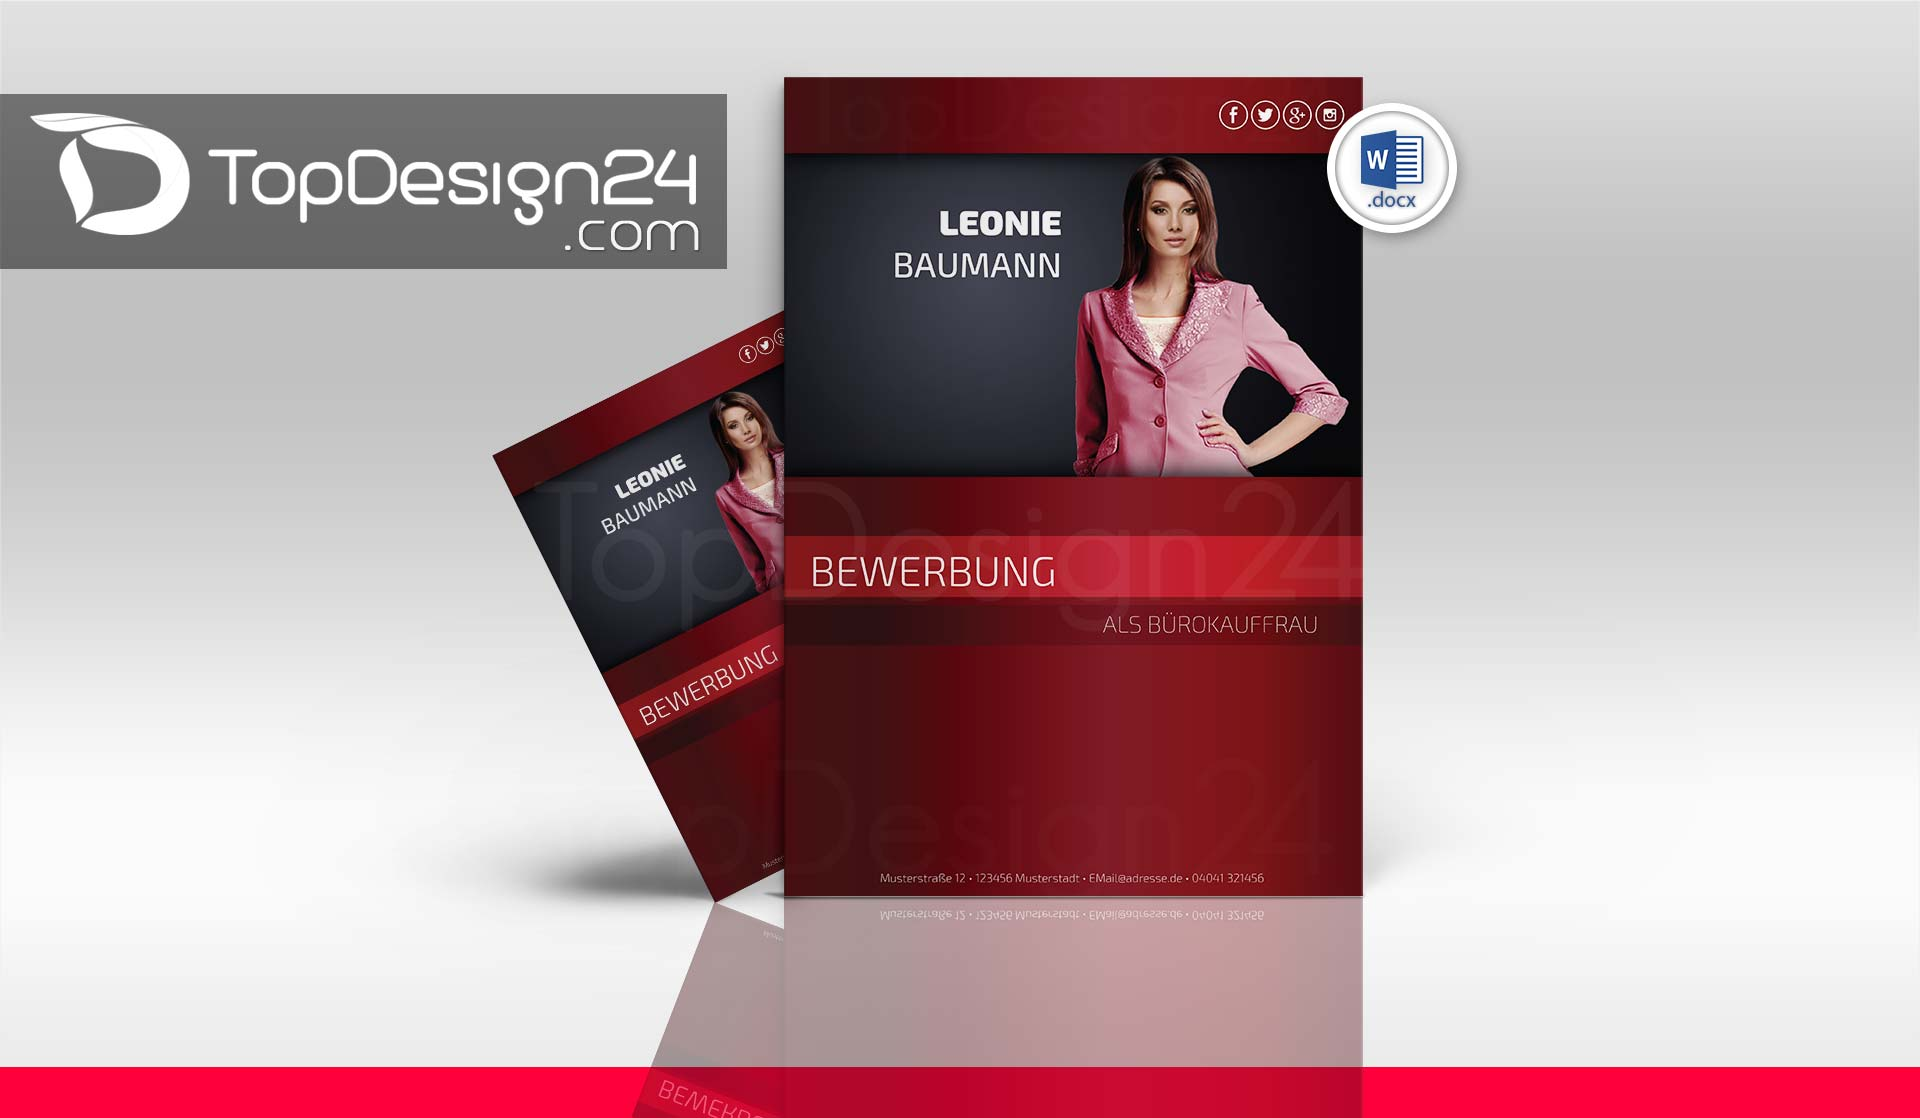 Online Bewerbung Muster Topdesign24